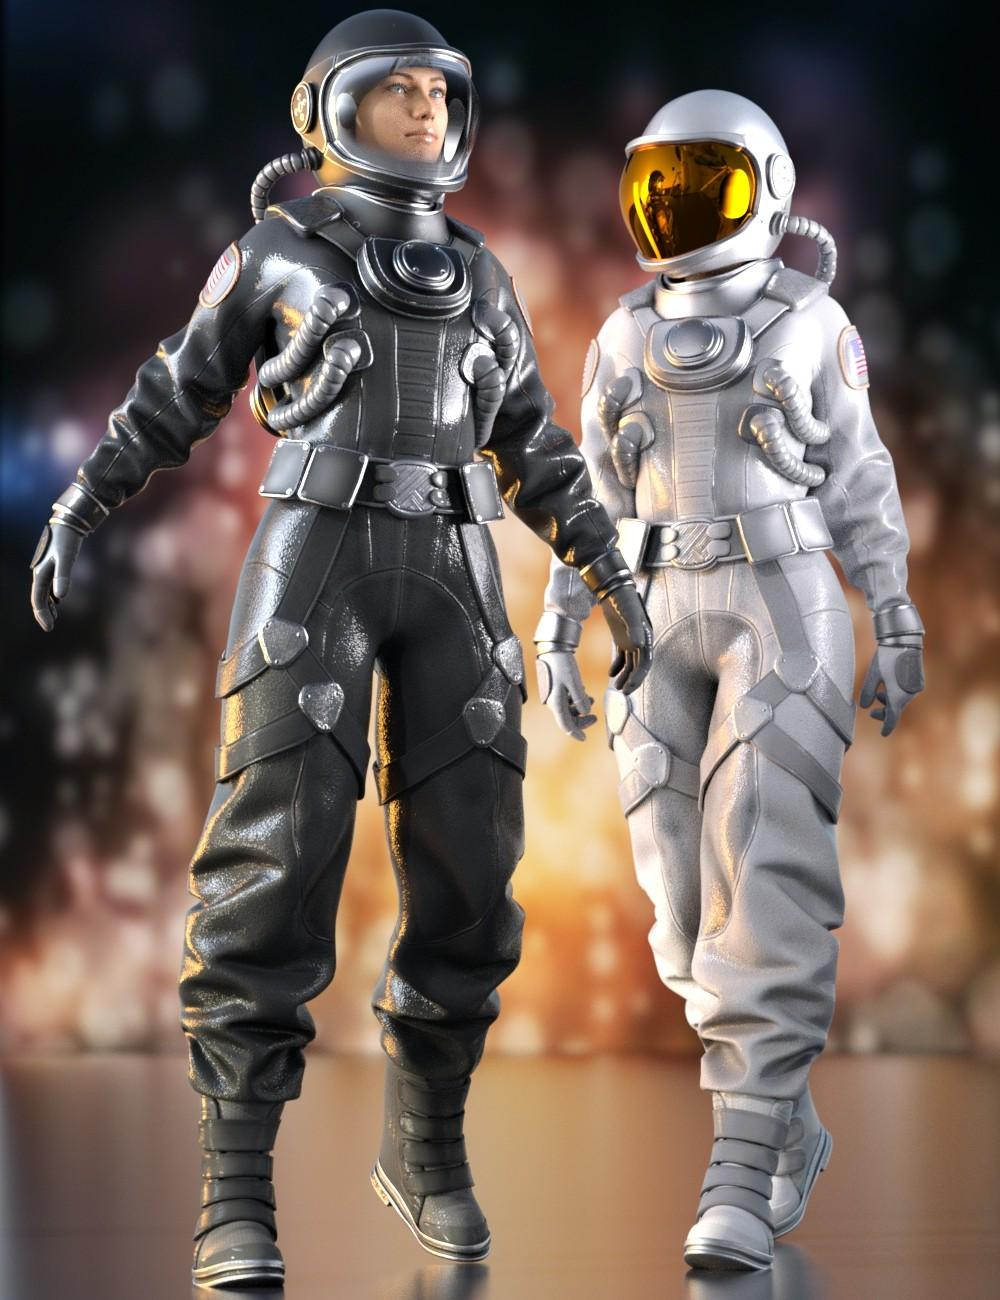 Space Suit Outfit for Genesis 8